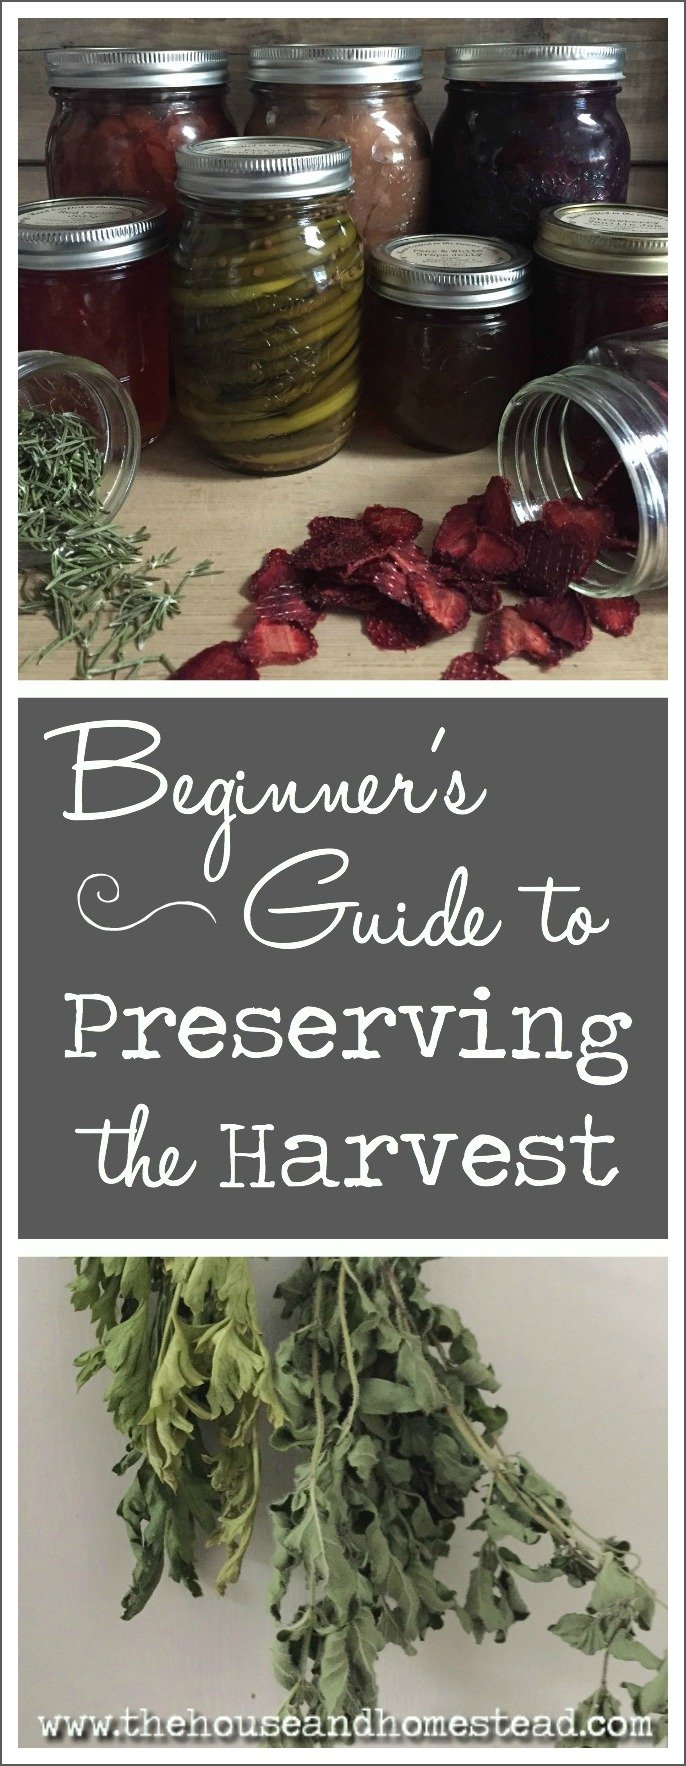 Preserving food is one of the most important skills you can acquire for homesteading, survival and self-reliance. Learn 3 easy ways to preserve the harvest with this beginner's guide to food preservation.